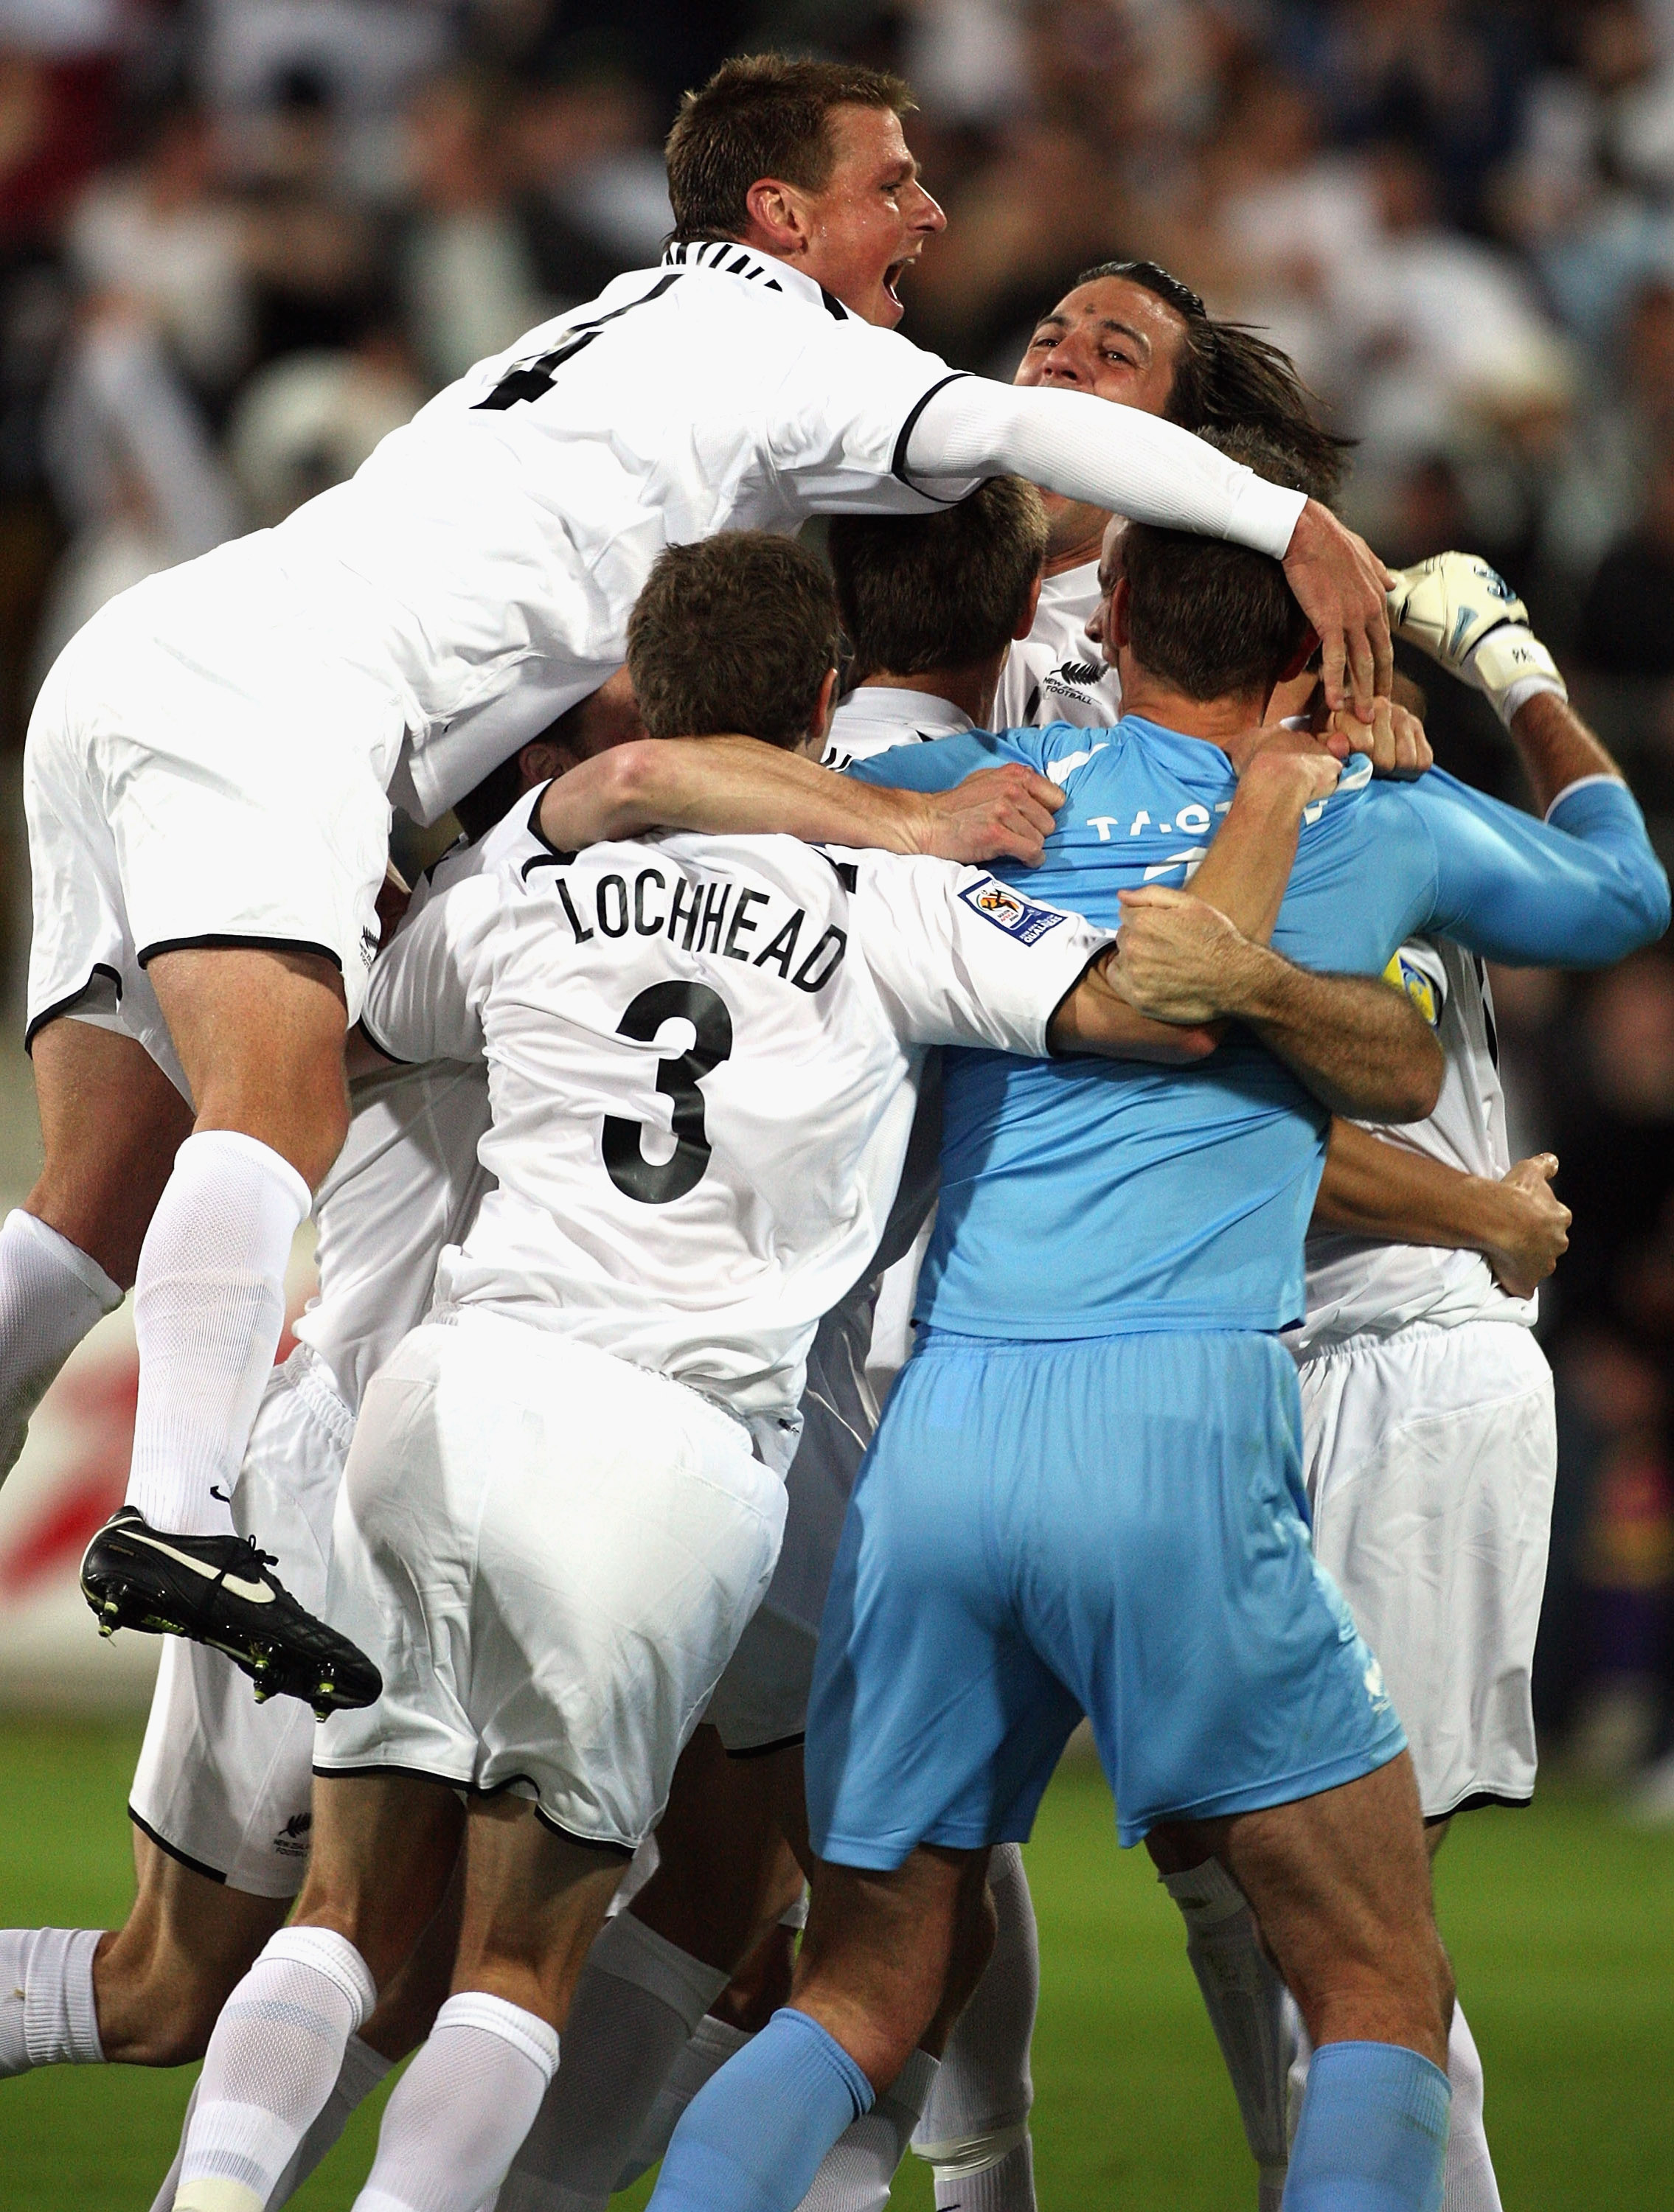 The All Whites celebrate after defeating Bahrain in the inter-confederation playoffs in Wellington in 2009. Photo / Getty Images.